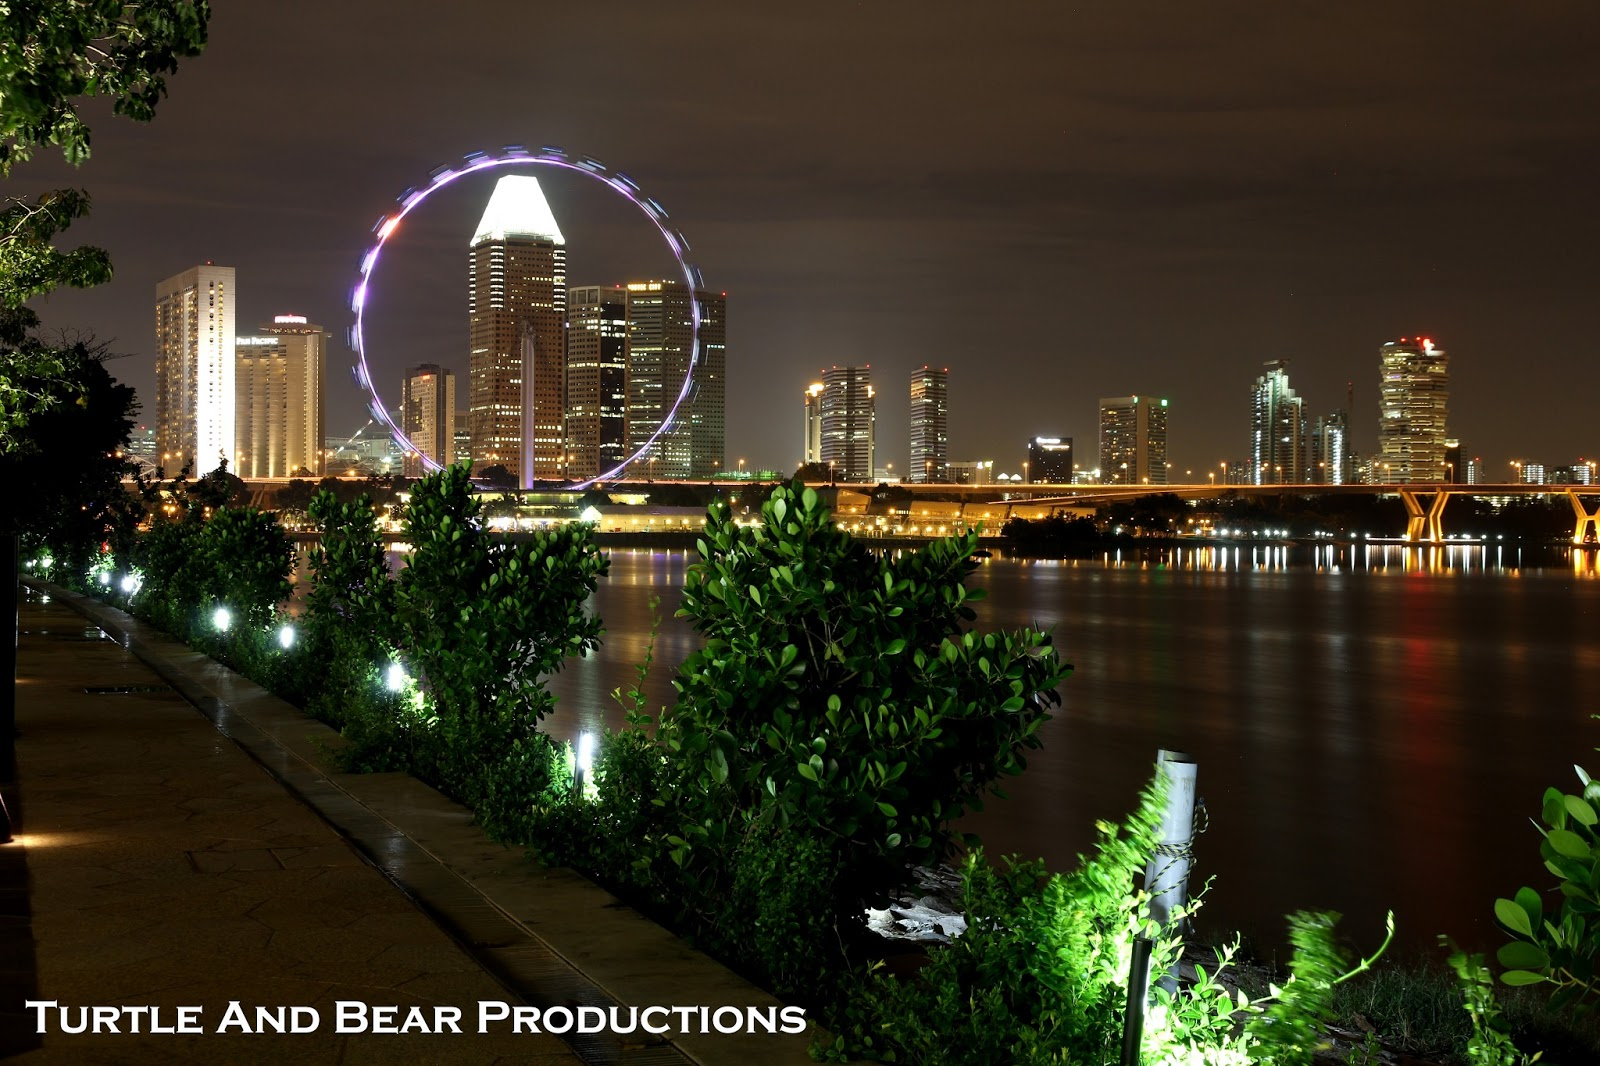 Garden By The Bay Night turtle and bear productions: night shoot @ marina barrage and